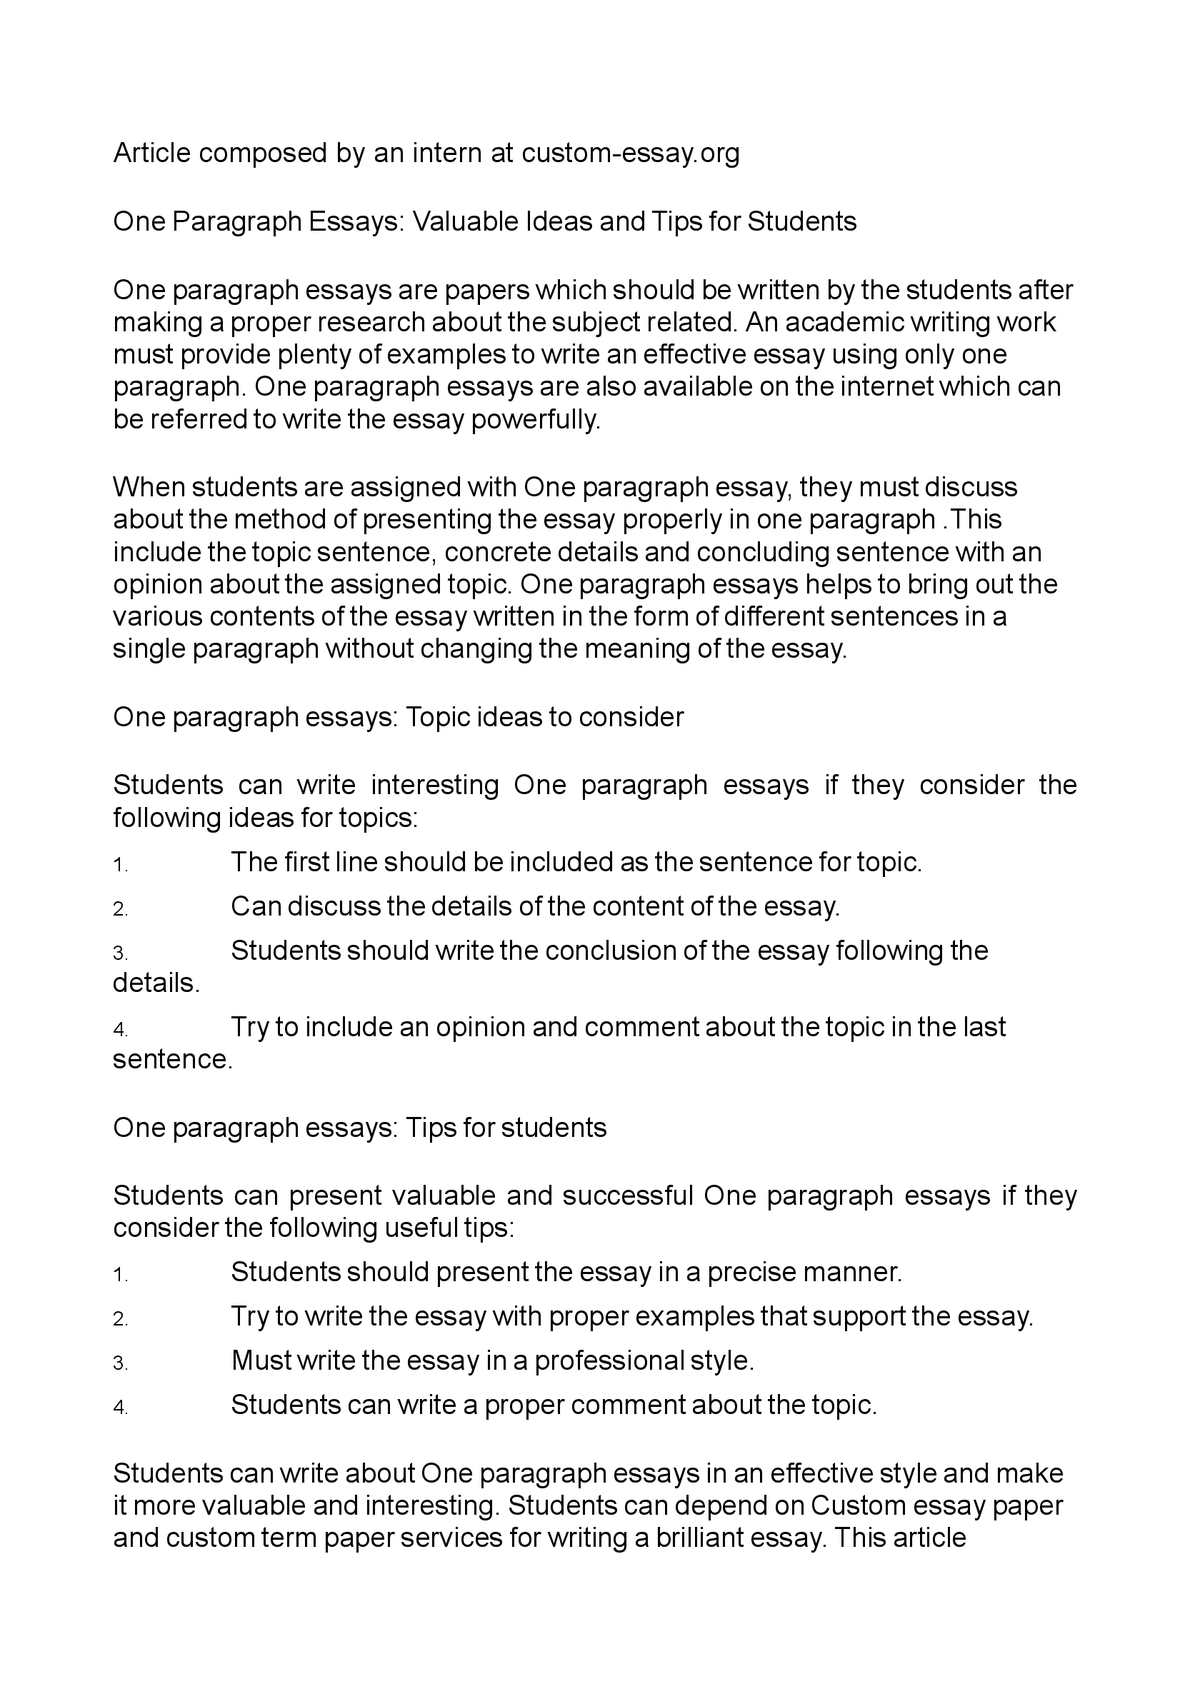 007 One Paragraph Essay P1 Awesome About Dwarfism Topics Full